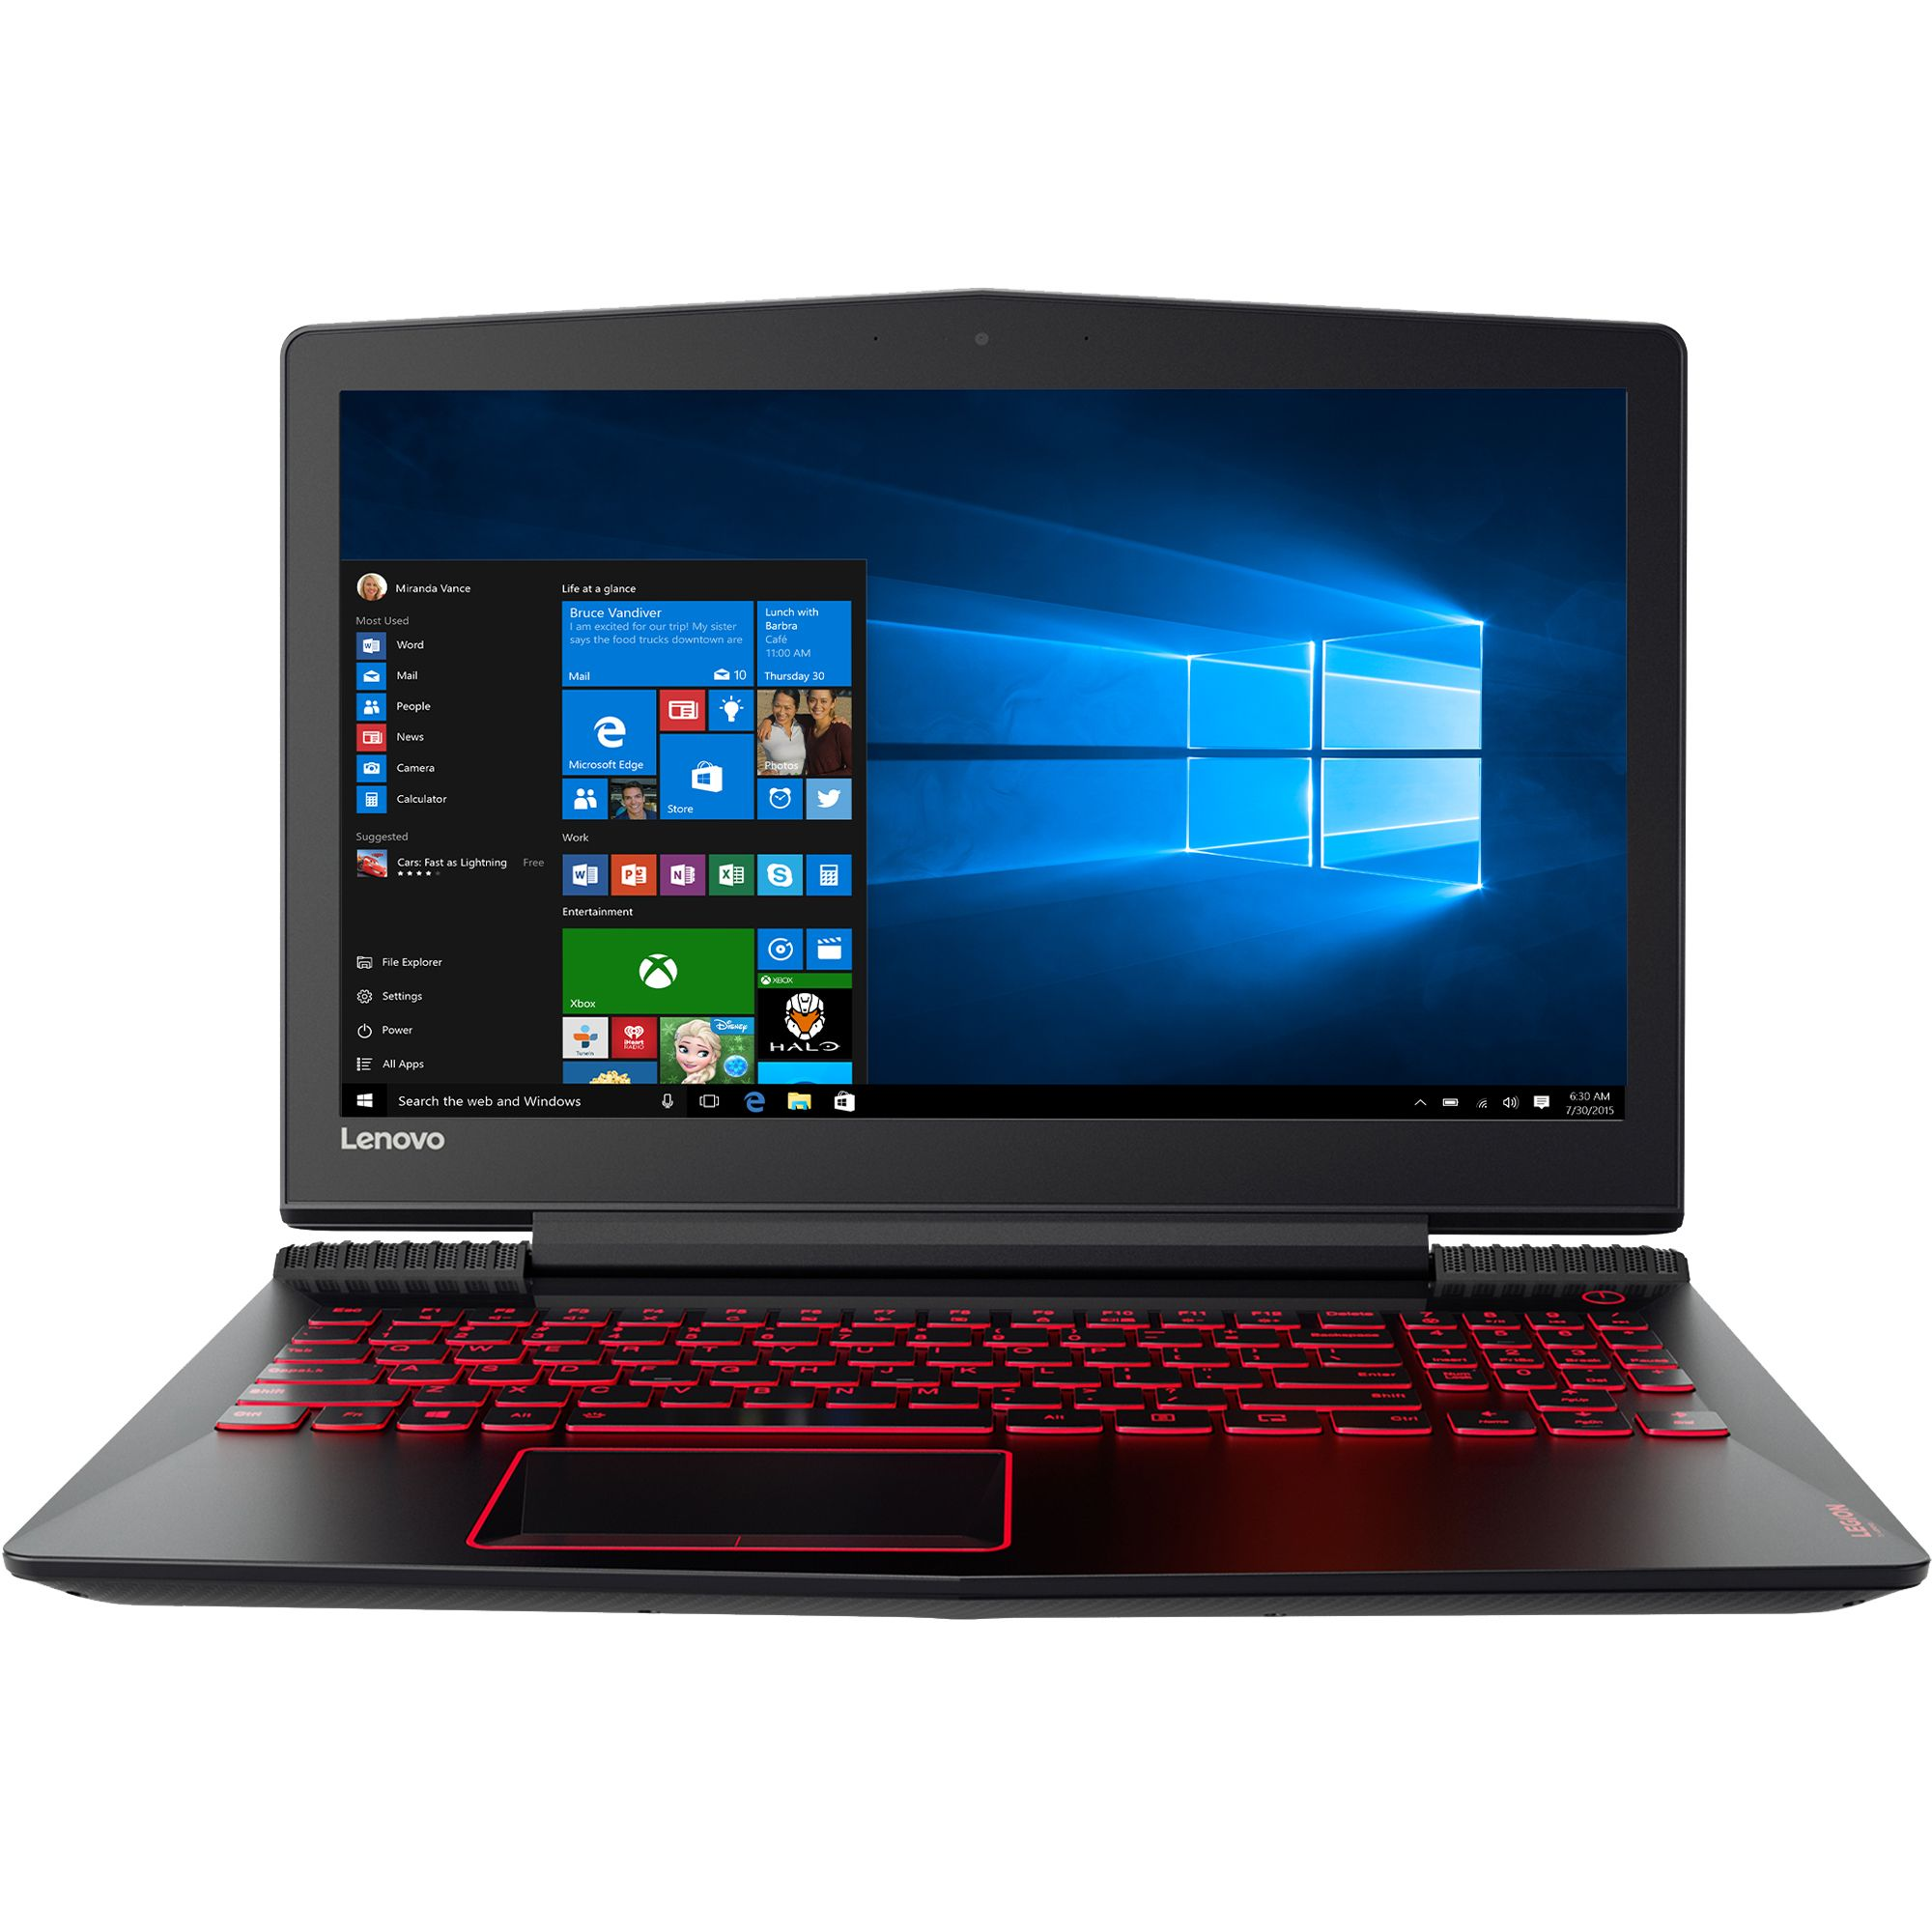 Notebook Lenovo Legion Y520 15.6 Full HD Intel Core i7-7700HQ GTX 1060-6GB RAM 8GB HDD 1TB + SSD 256GB FreeDOS Negru